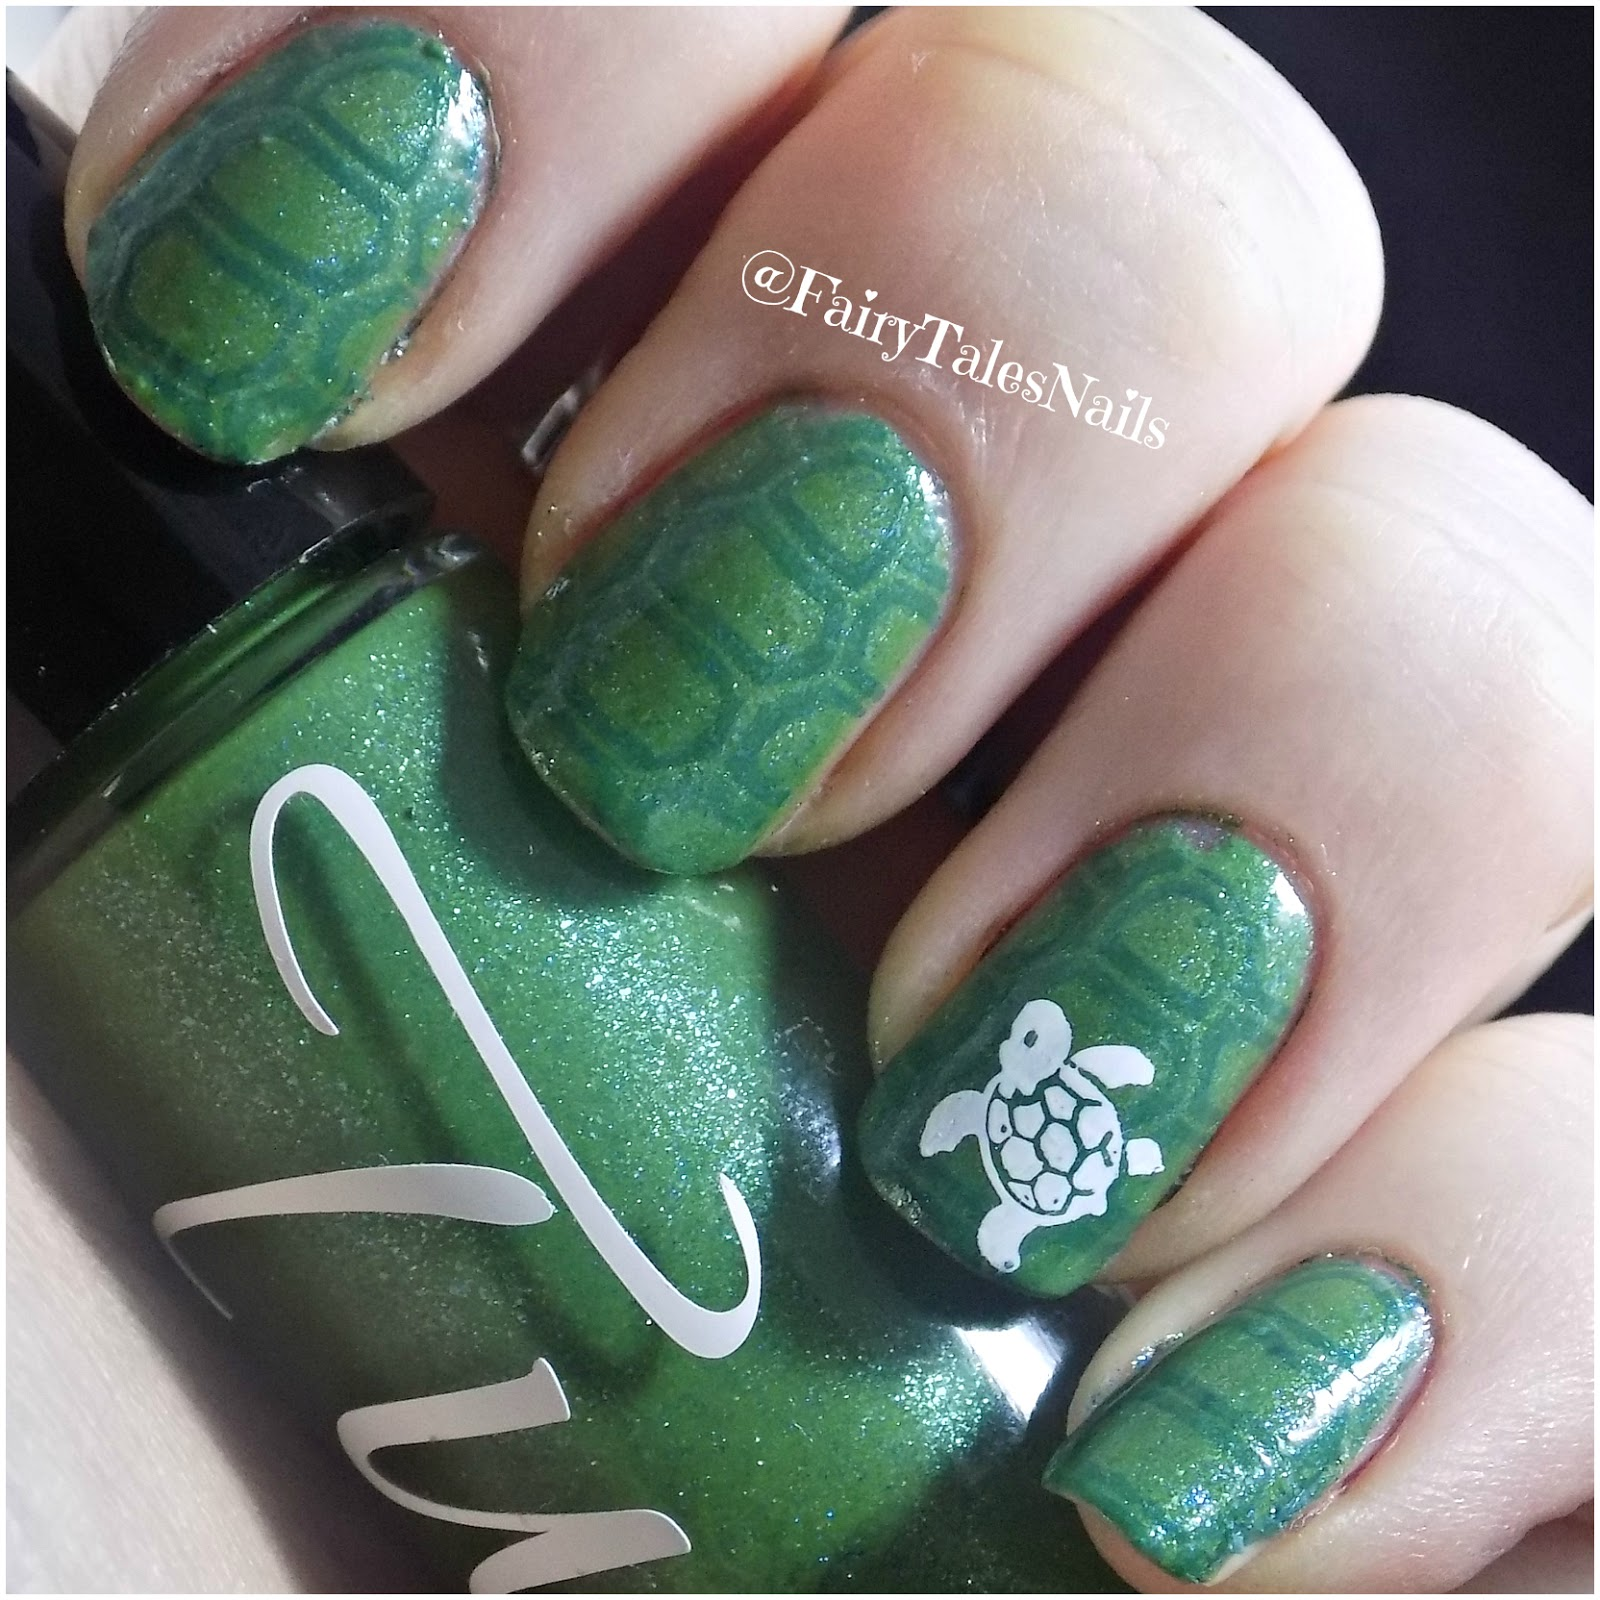 I Managed To Use This Beautiful Polish And Create In My Opinion A Very Cute Sea Turtle Manicure Completely Fell Love With As Soon Saw